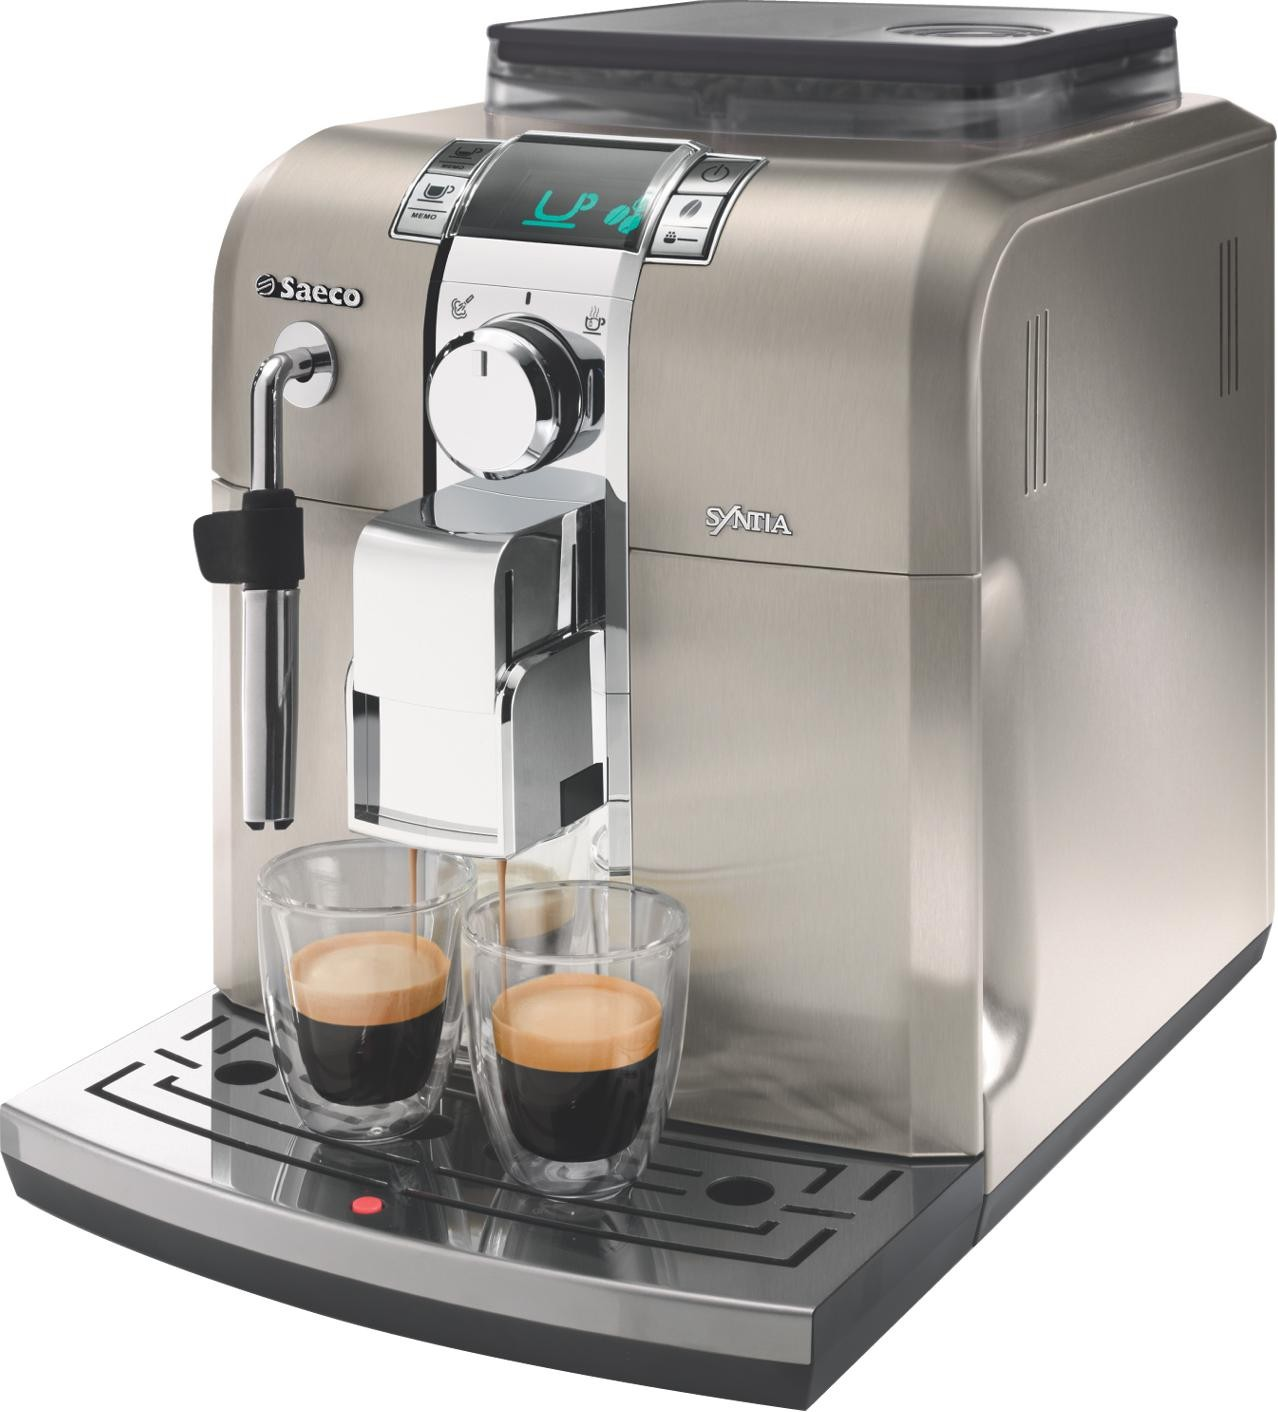 Saeco Espresso Machine (Image 7 of 10)